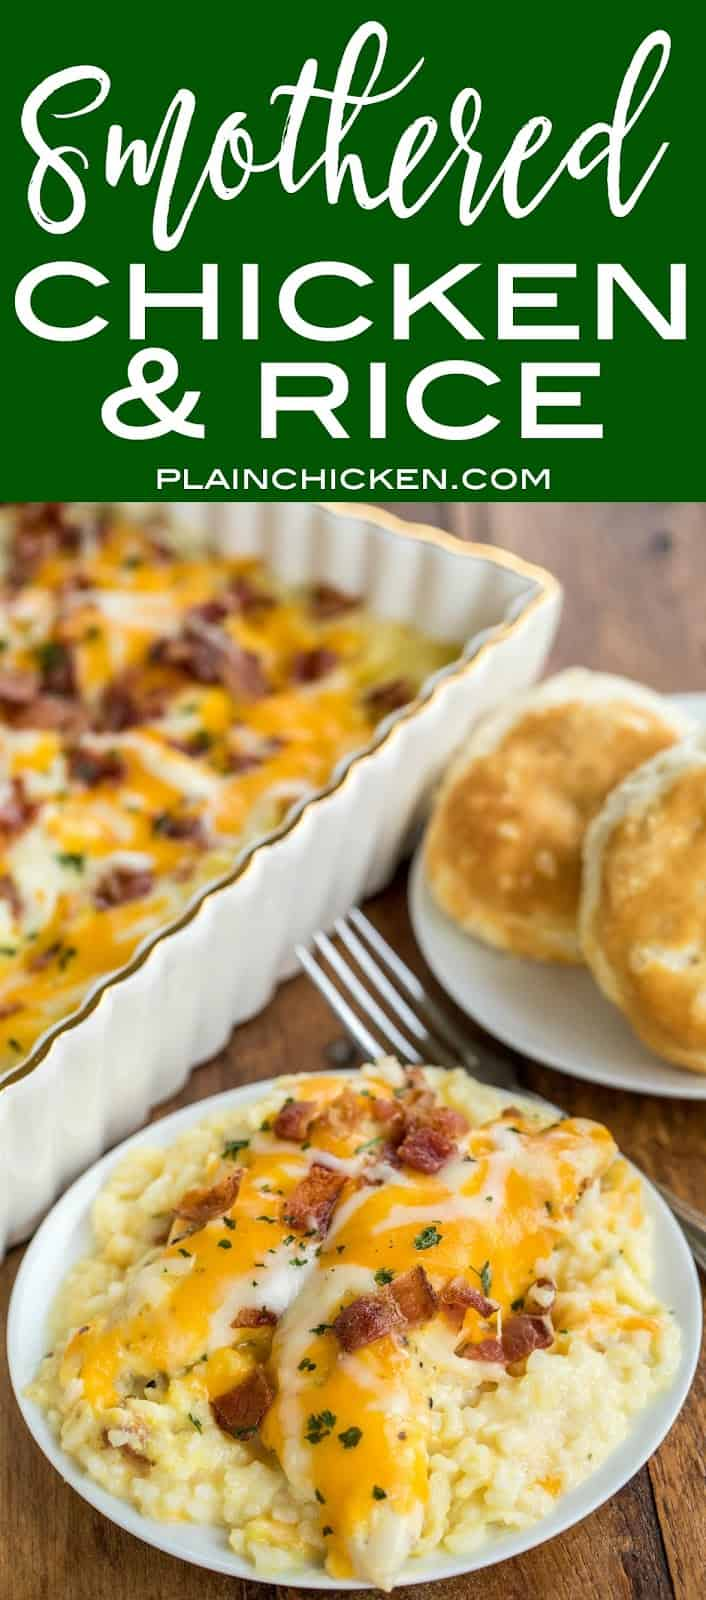 Smothered Chicken and Rice recipe - seriously delicious! Everyone cleaned their plate and asked for seconds! That never happens at our house!!! Chicken and rice baked in cream of chicken soup, milk, cheddar, mozzarella and bacon. Ready to bake in a snap and on the table in 30 minutes. We make this at least once a month!! SO GOOD!! #chickenrecipe #easychickenrecipes #chickenandrice #casserolerecipe #30minutedinnerrecipe